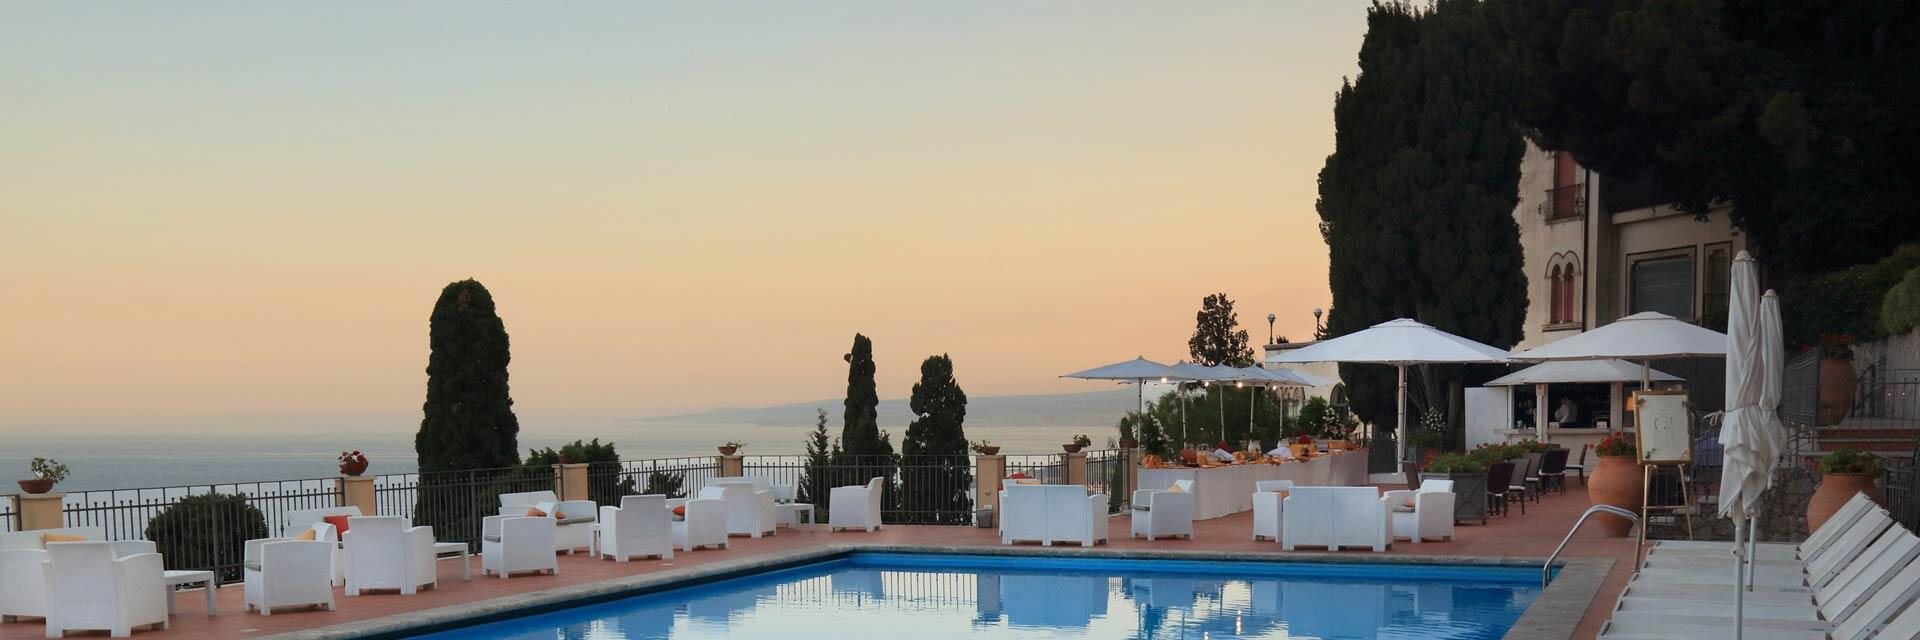 sanpietrotaormina en holiday-in-sicily-hotel-5-stars-with-one-night-free 012